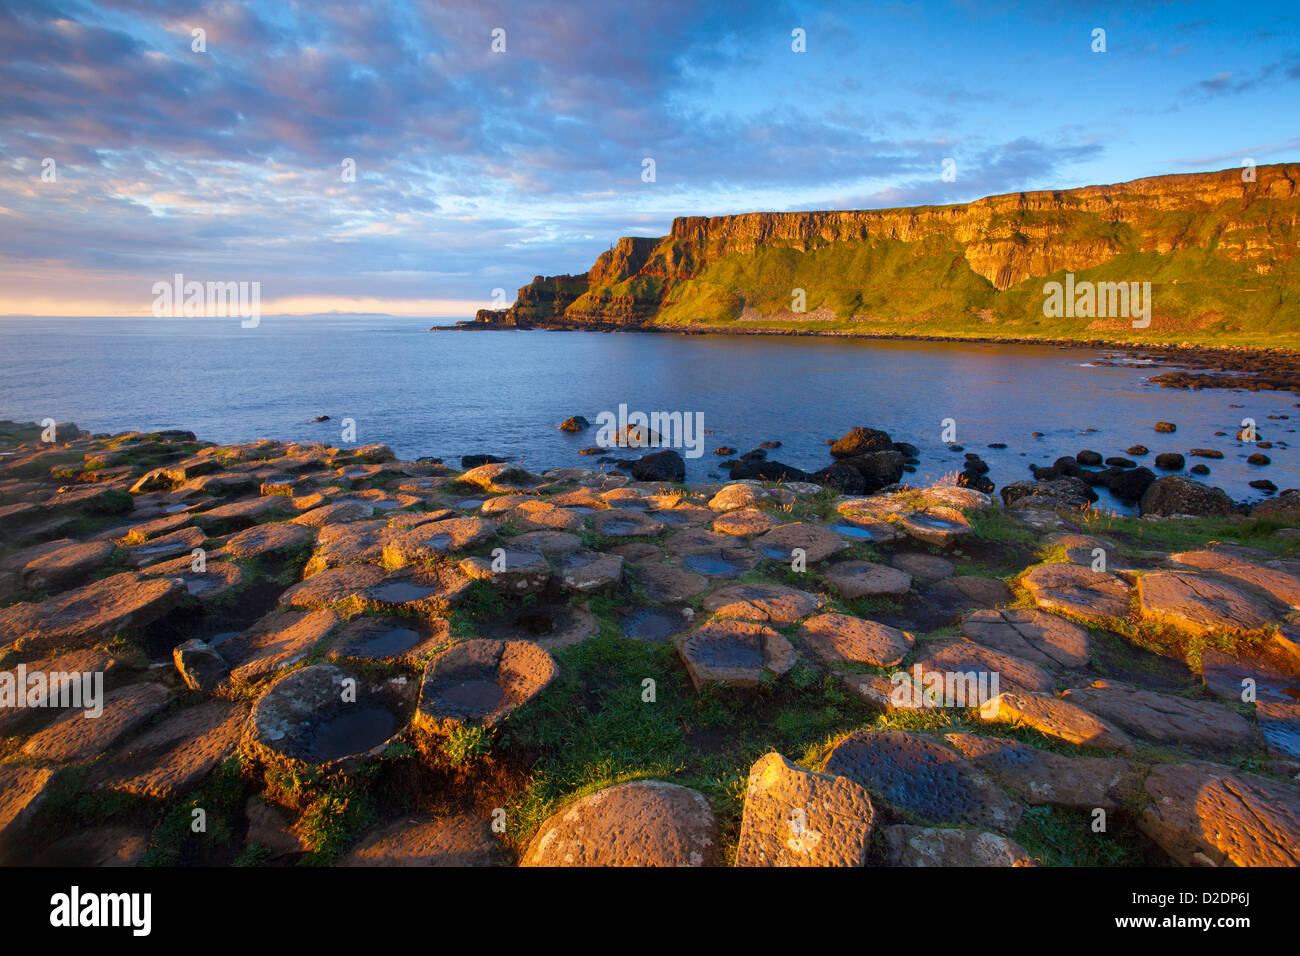 Evening light on the Giant's Causeway, County Antrim, Northern Ireland. Stock Photo